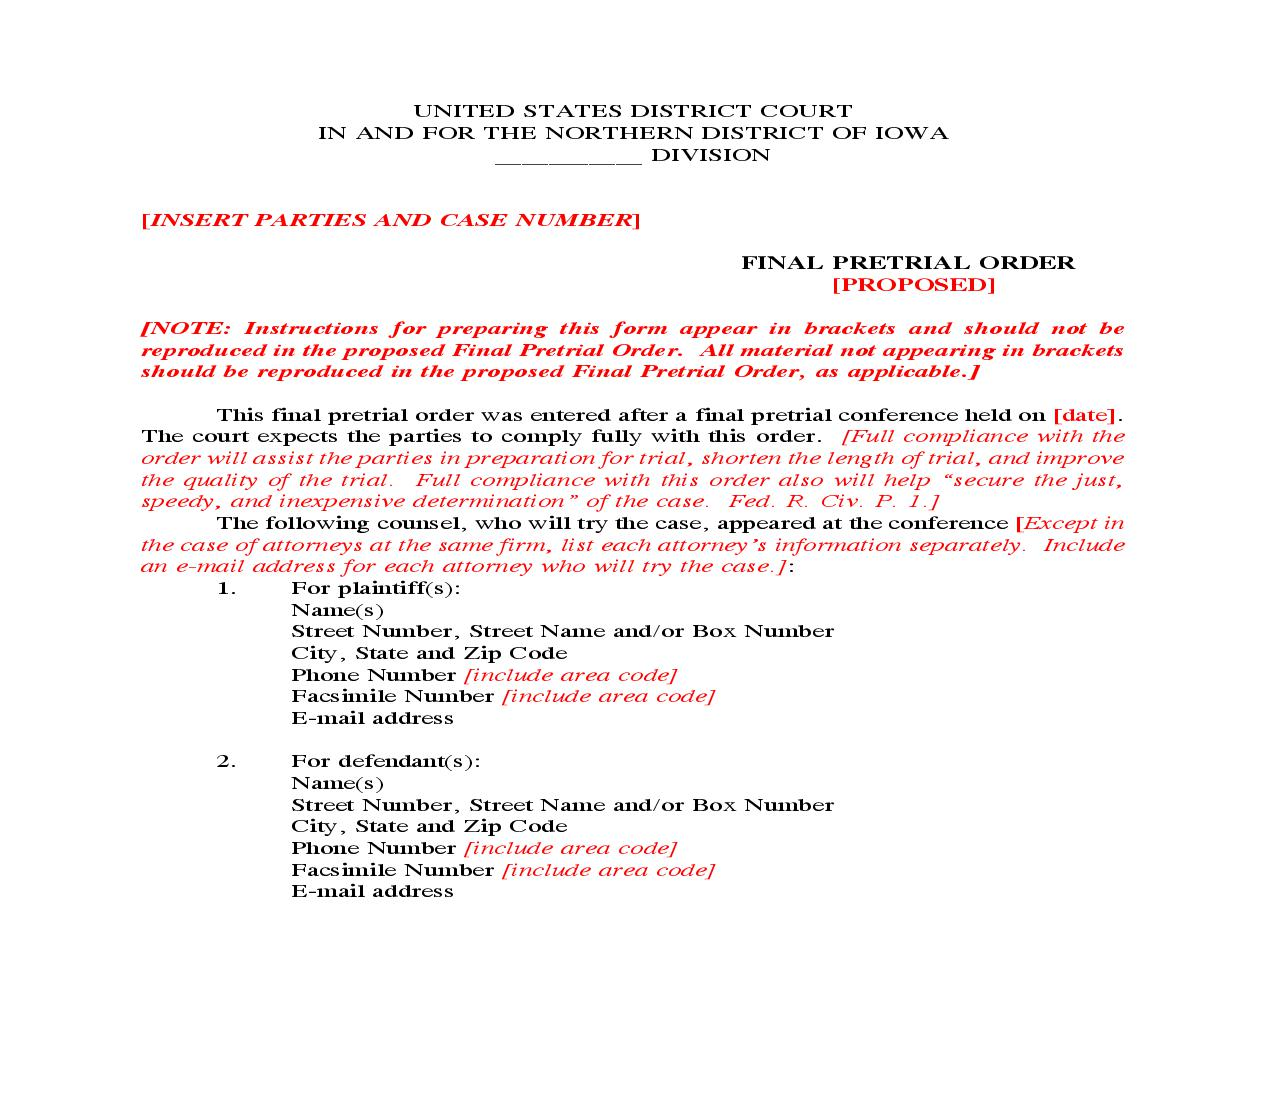 Proposed Final Pretrial Order (Sample And Form) | Pdf Fpdf Doc Docx | Iowa